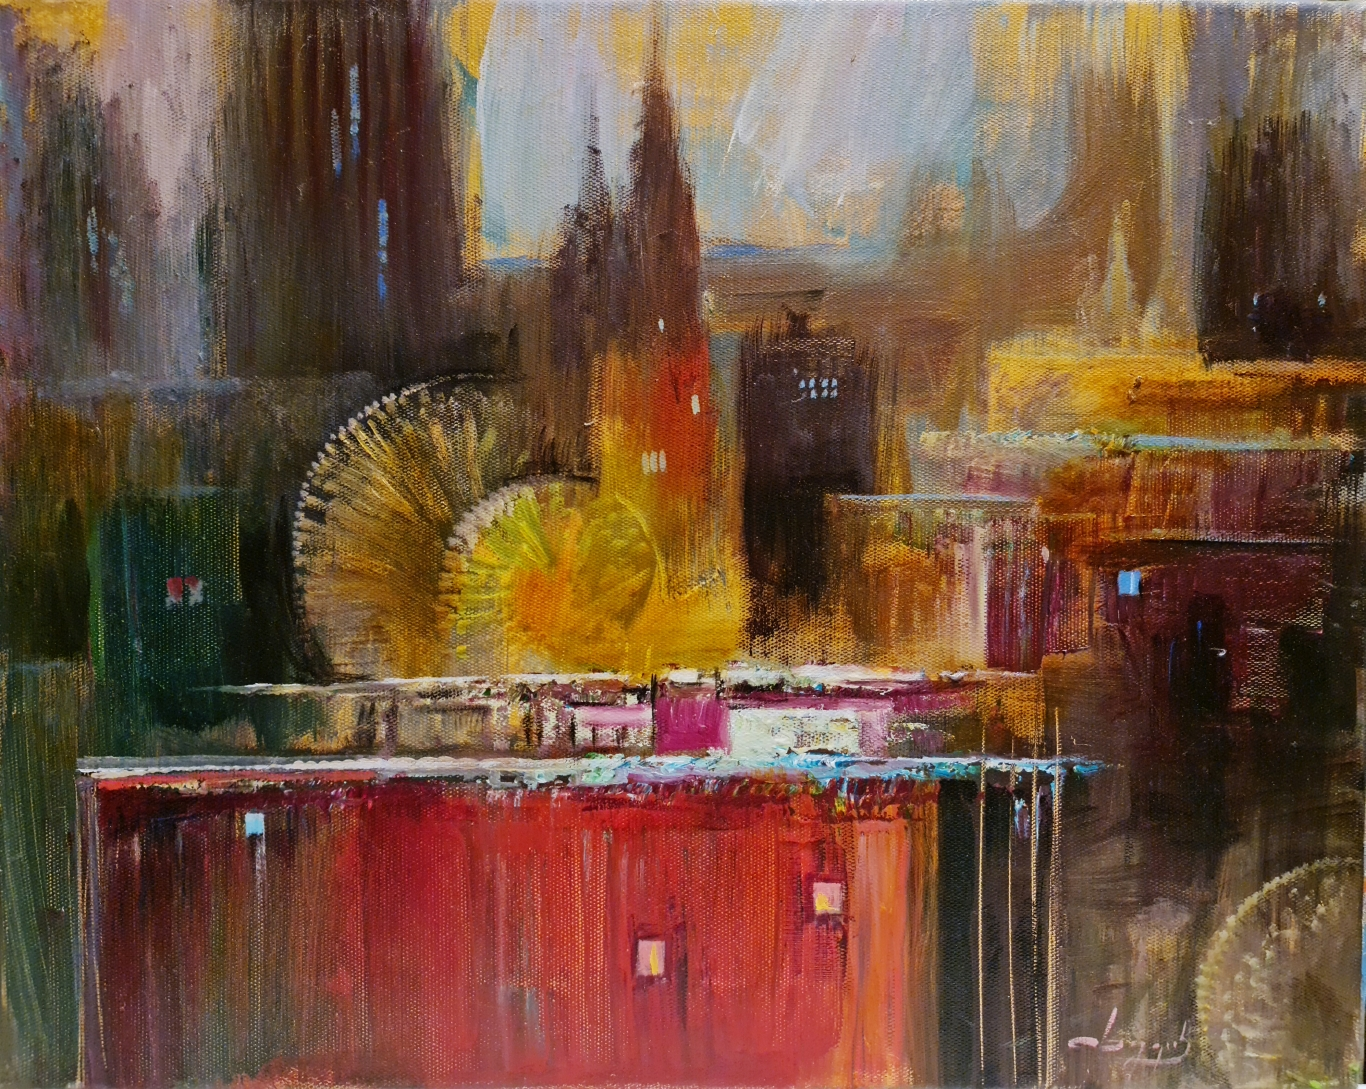 Realism and Abstraction in the Work of Oleg Fedorov